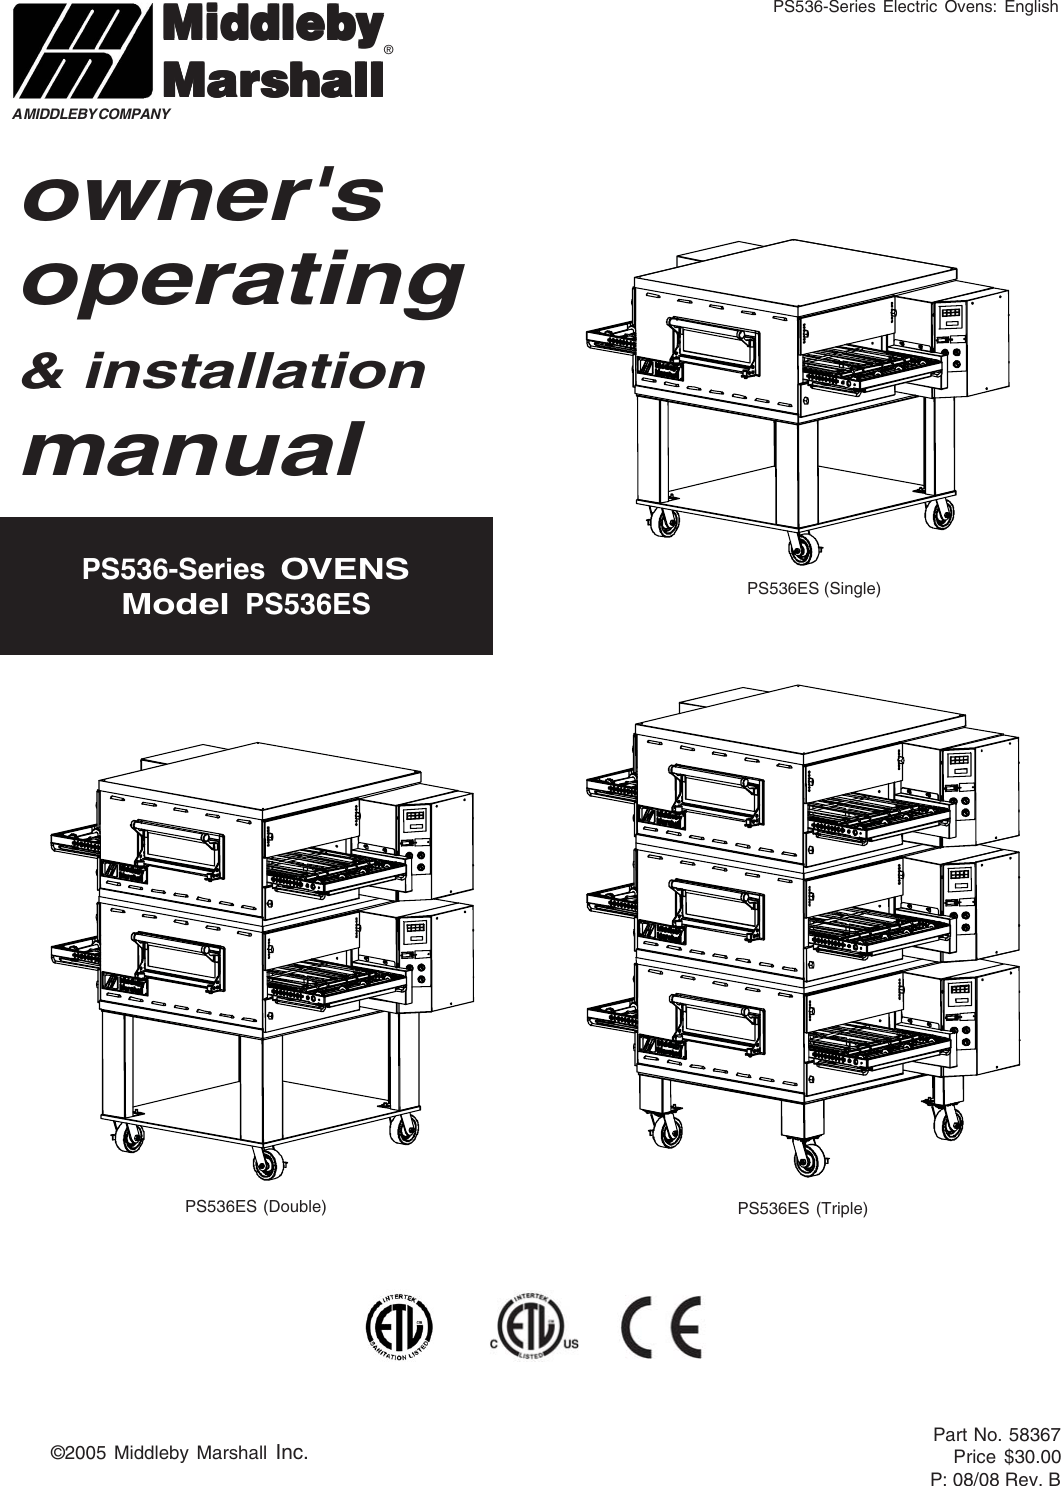 Middleby Marshall Ps536 Series Users Manual